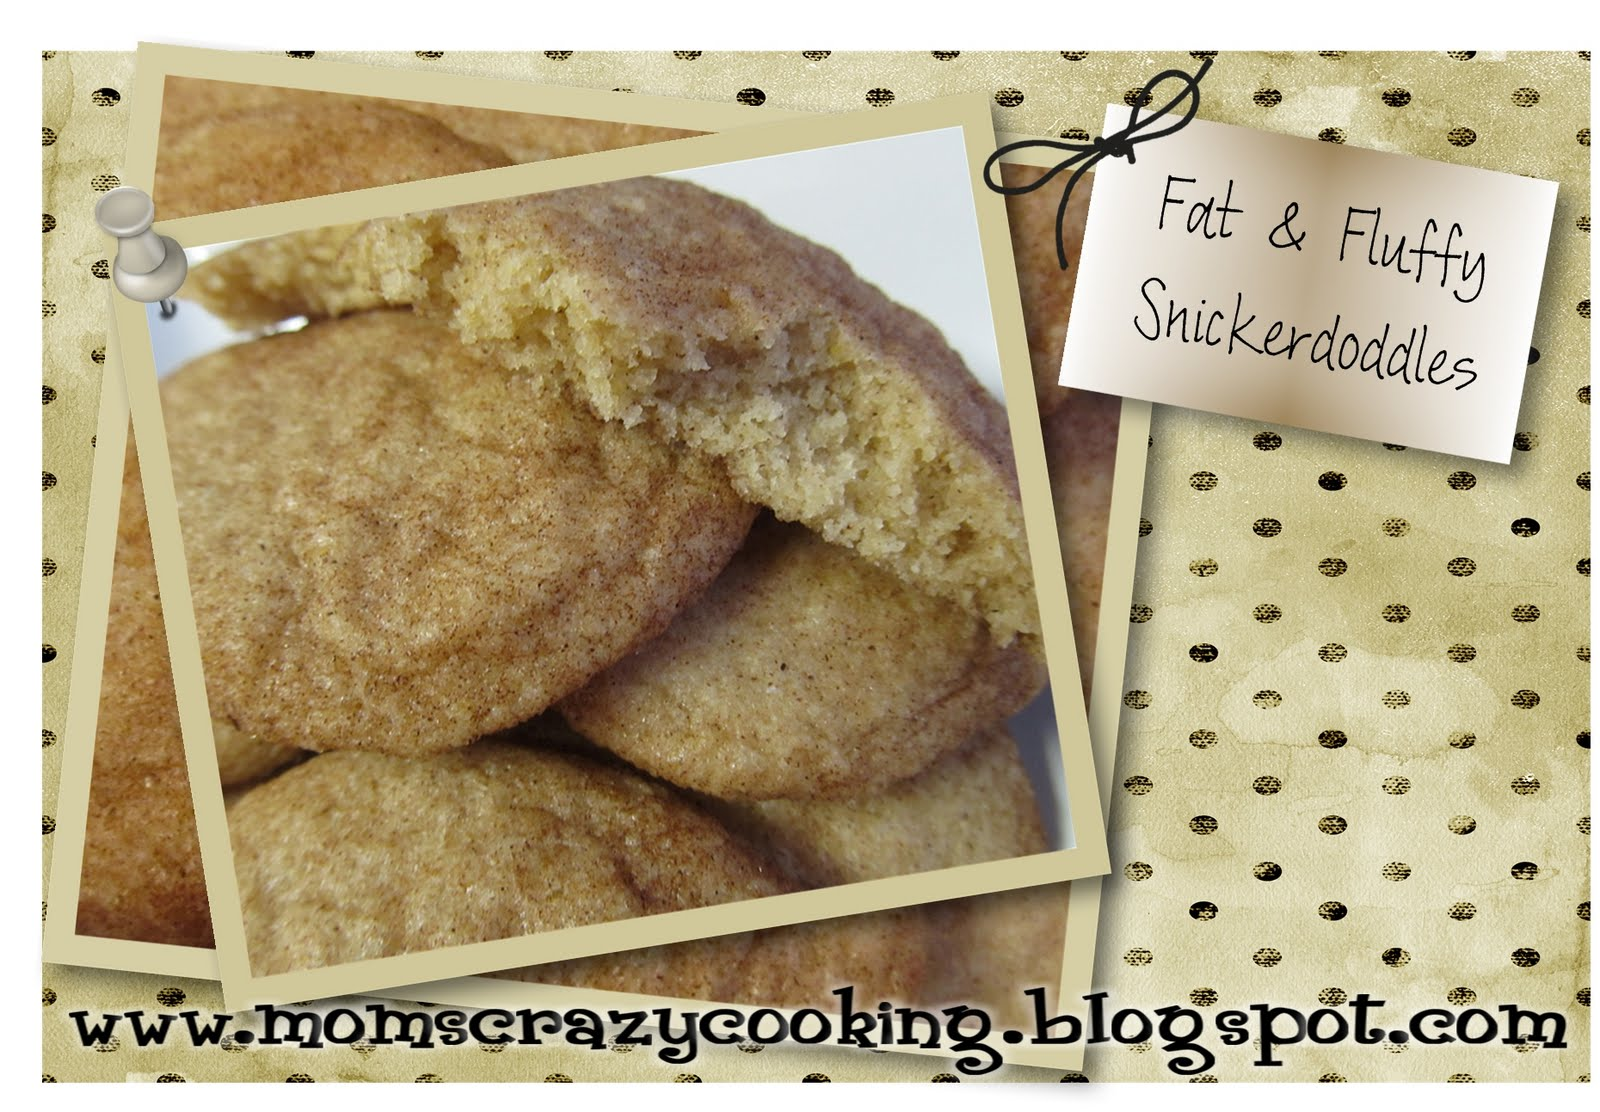 MOMS CRAZY COOKING: Fat & Fluffy Snickerdoodles